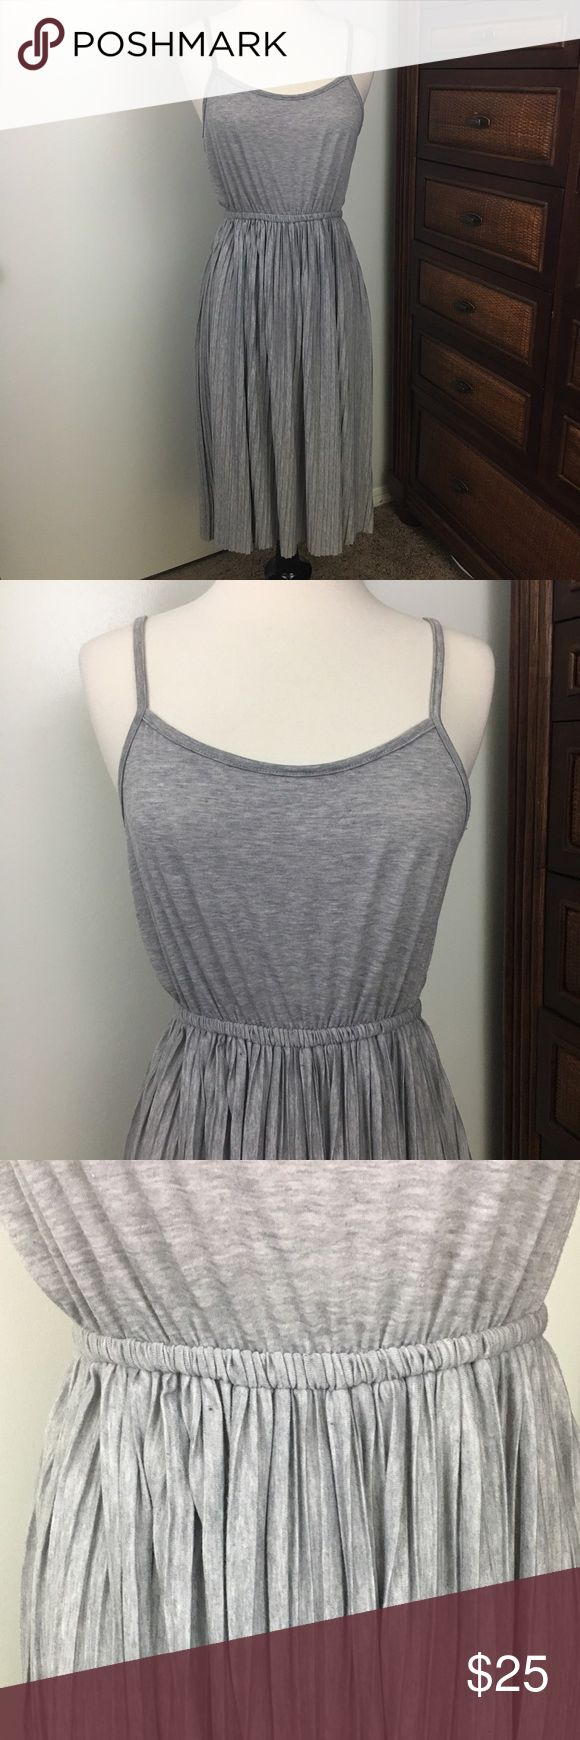 Grey Tea Length Dress by Tea n Rose Los Angeles Size Medium heathered grey Tea-length dress by Tea n Rose Los Angeles. Elastic waist (sort of empire waist depending on chest size), non adjustable spaghetti straps and a pleated skirt below waist. It's just a bit too big on me, so it's never been worn. tea n rose Dresses Midi